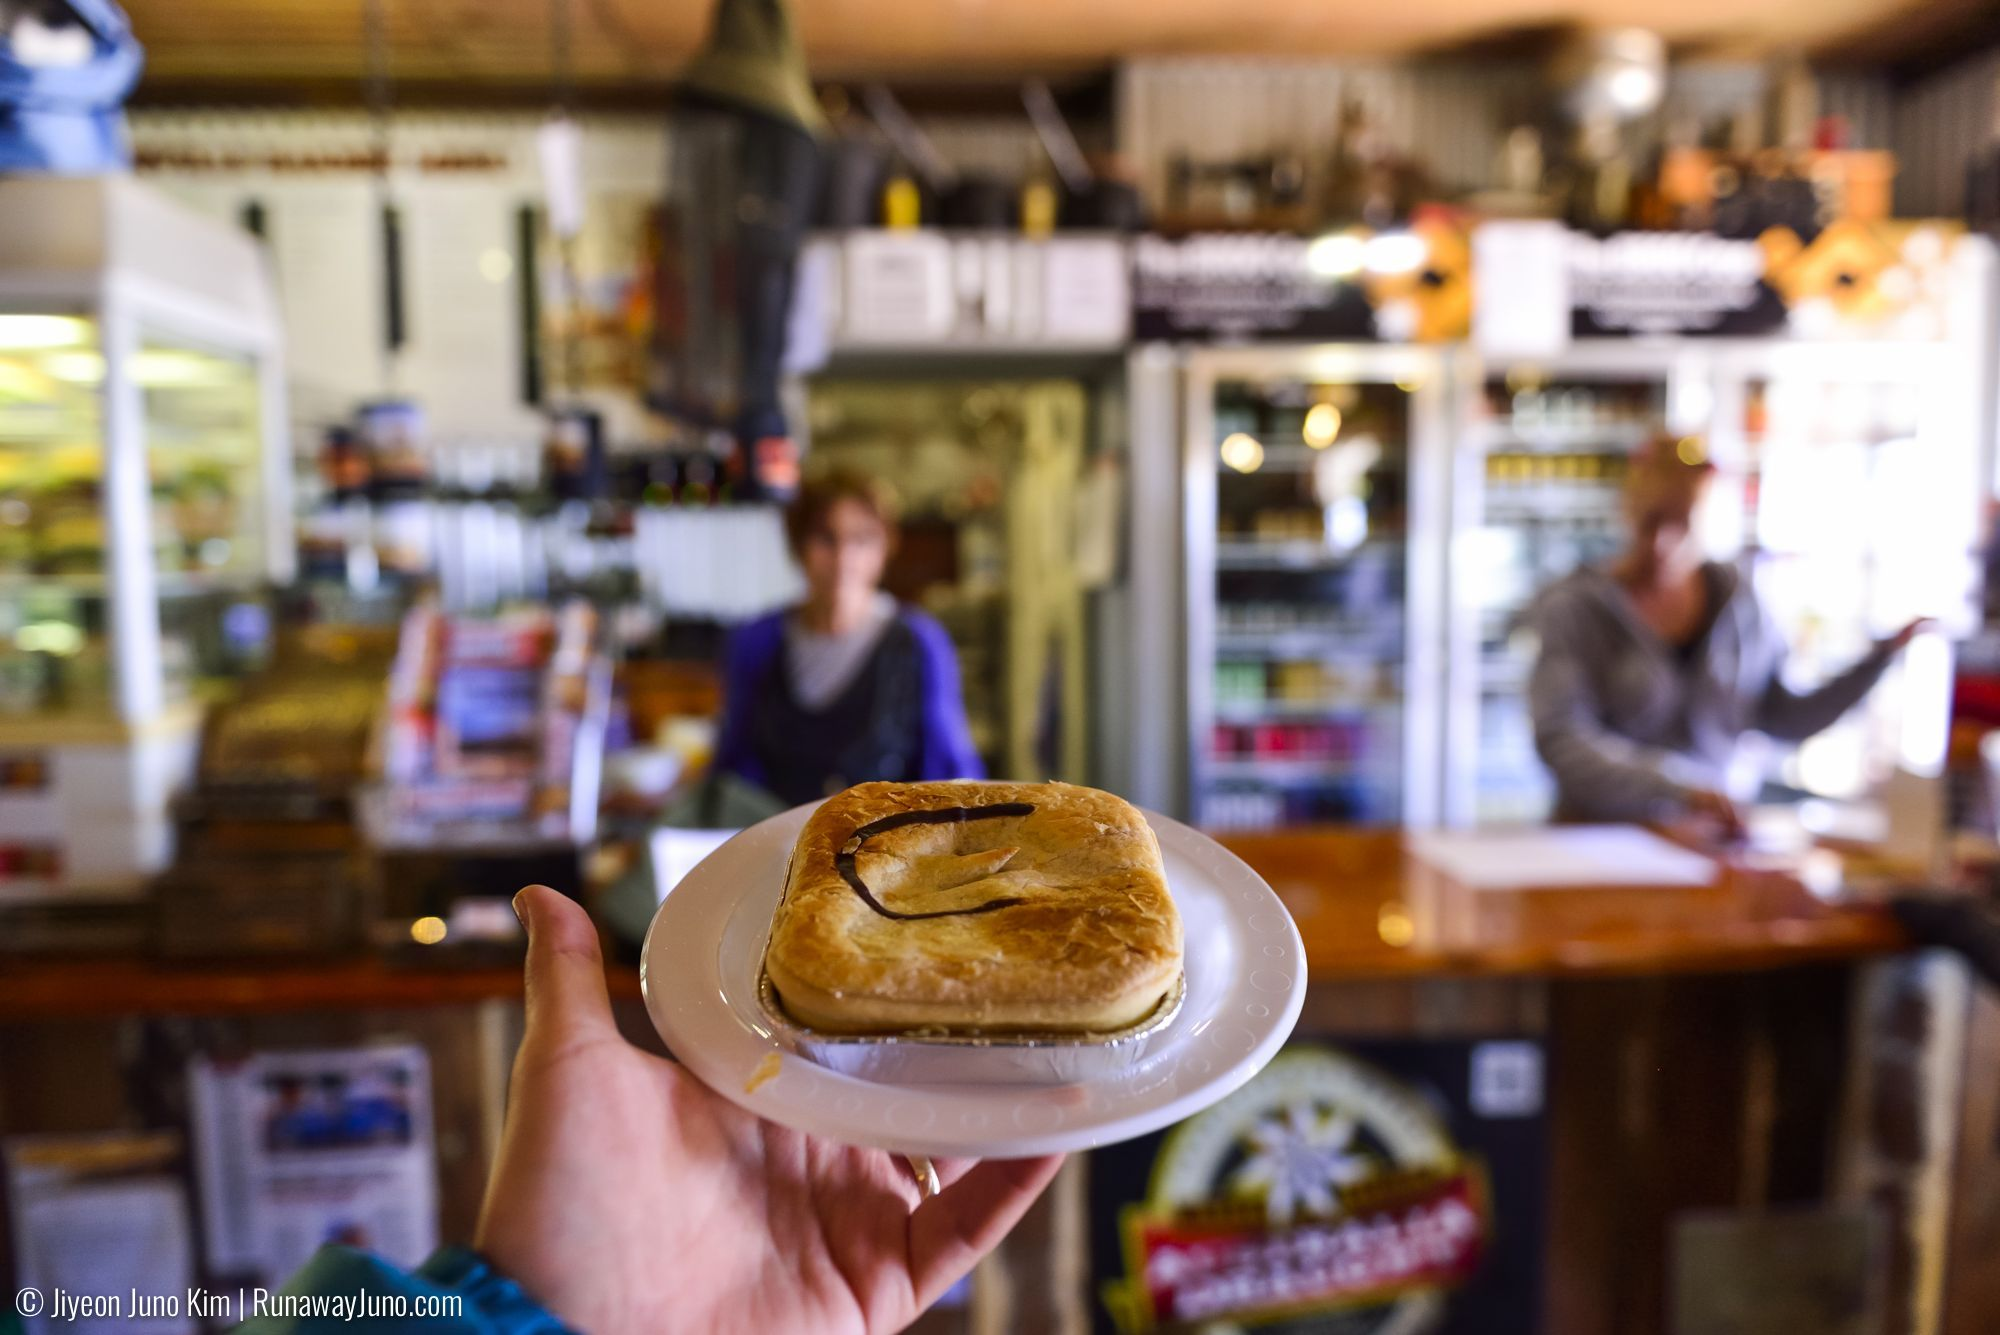 Birdsville bakery: Curried camel pie